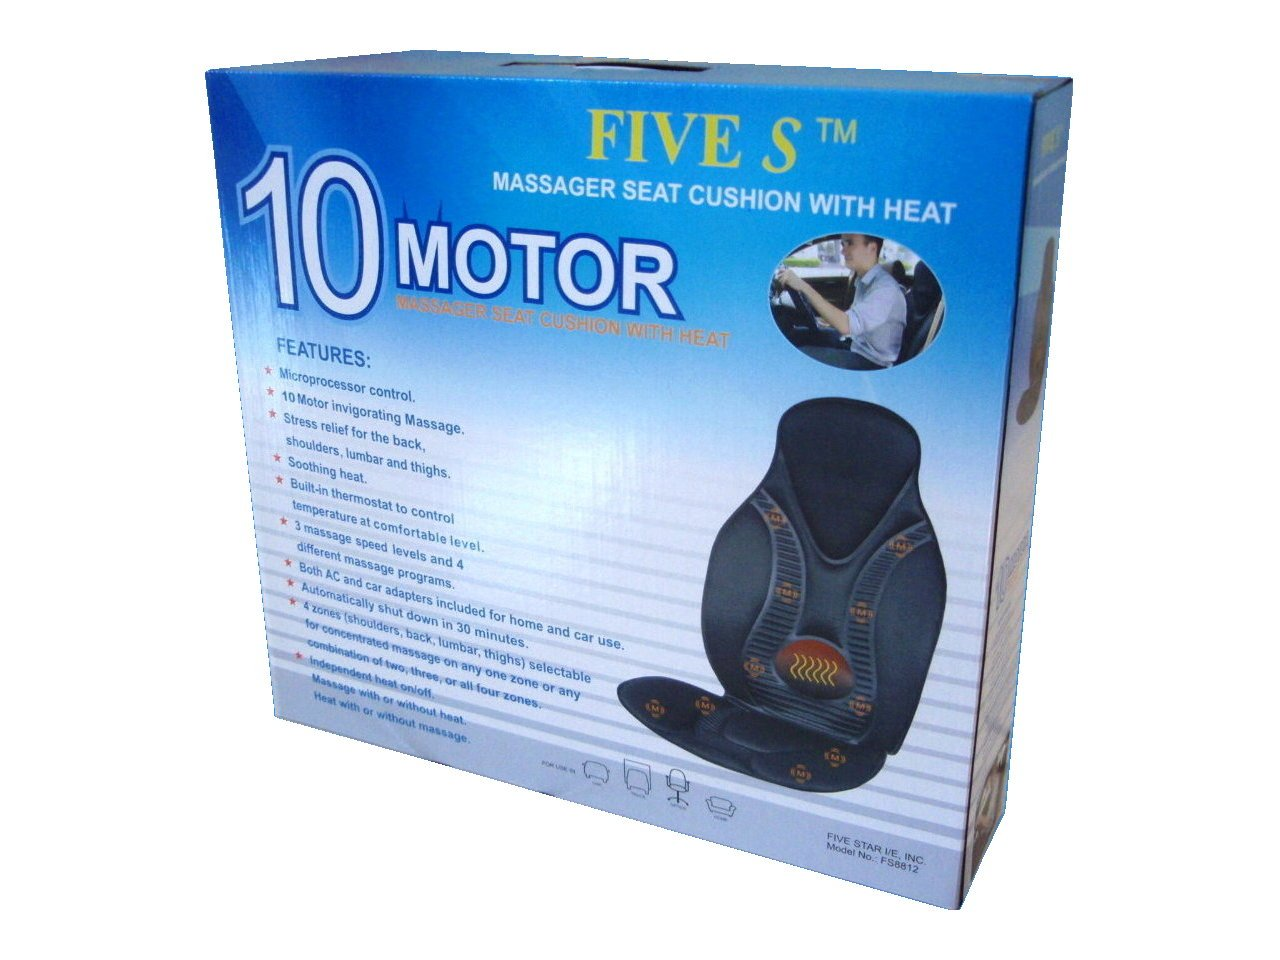 Amazoncom New Five Star FS8812 10 Motor Vibration Massage Seat